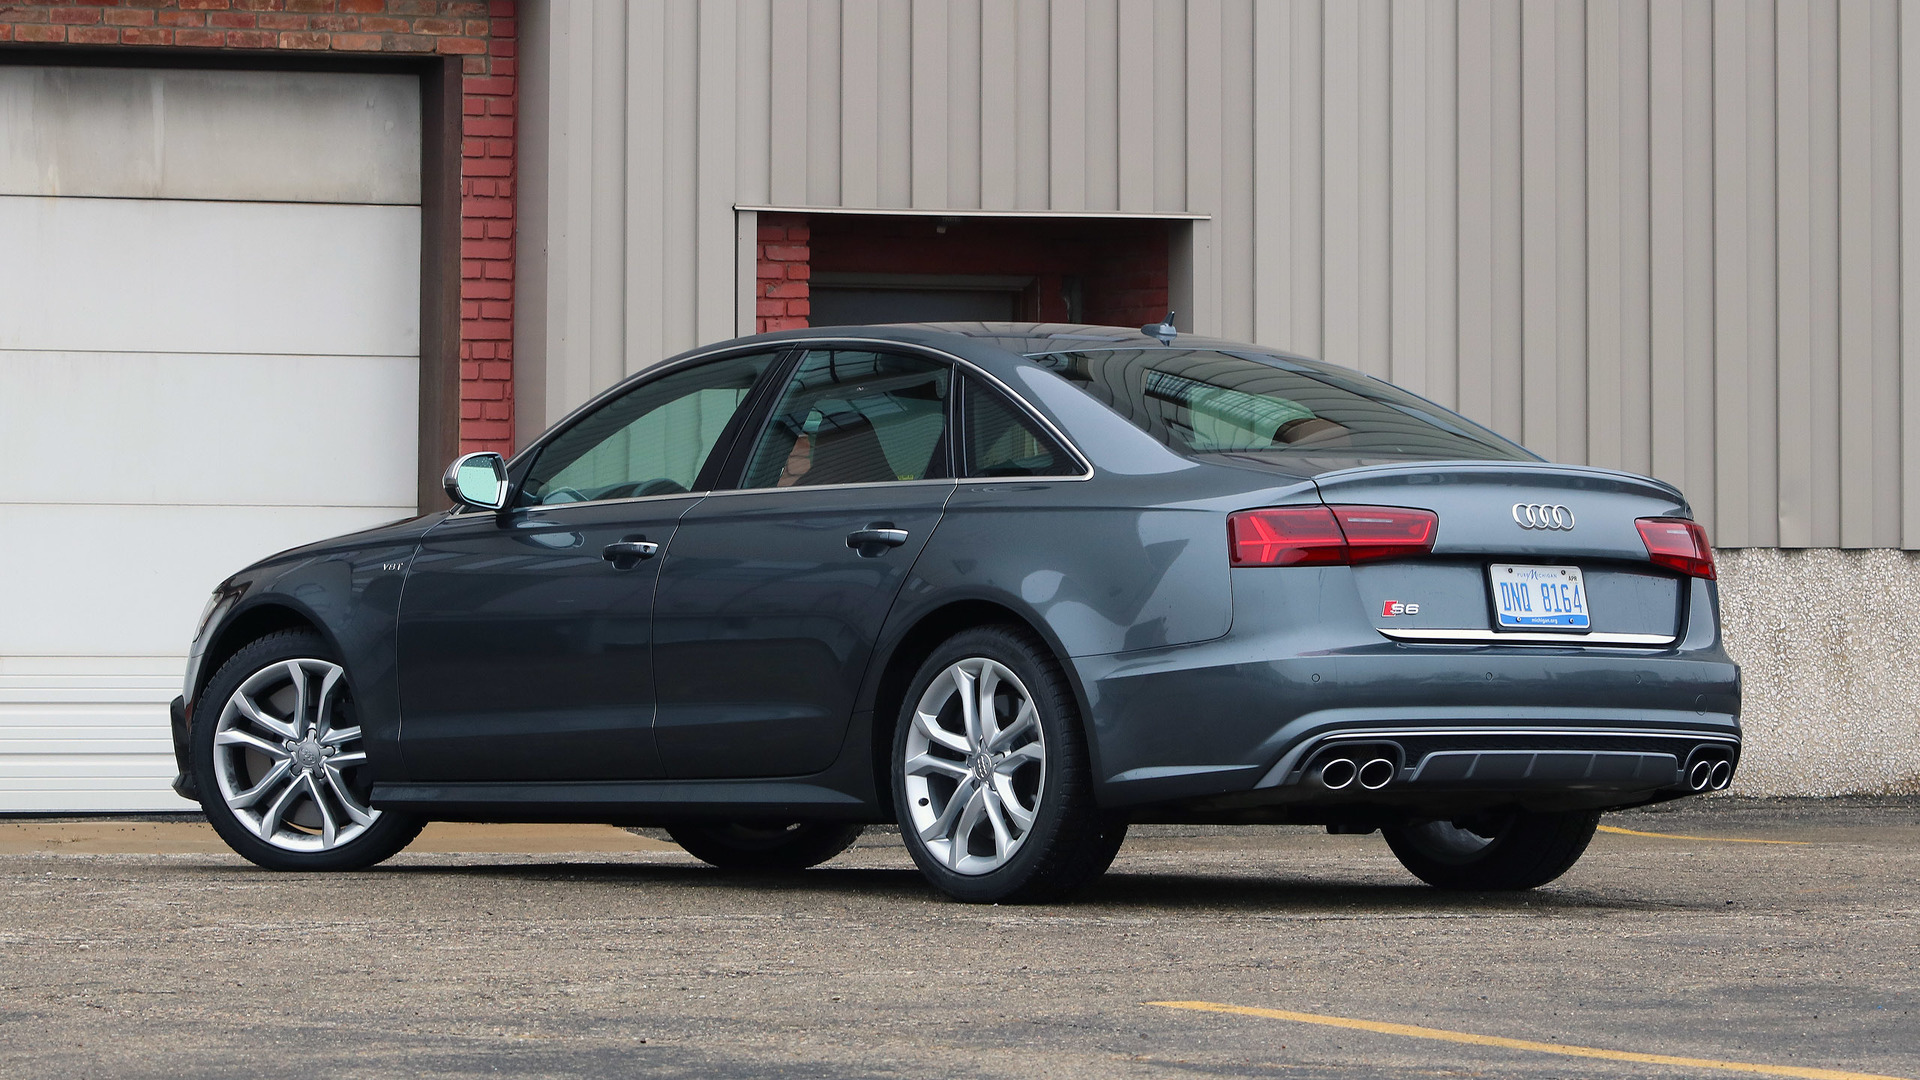 Audi S Review Devour Freeways Without Breaking A Sweat - Audi s6 review